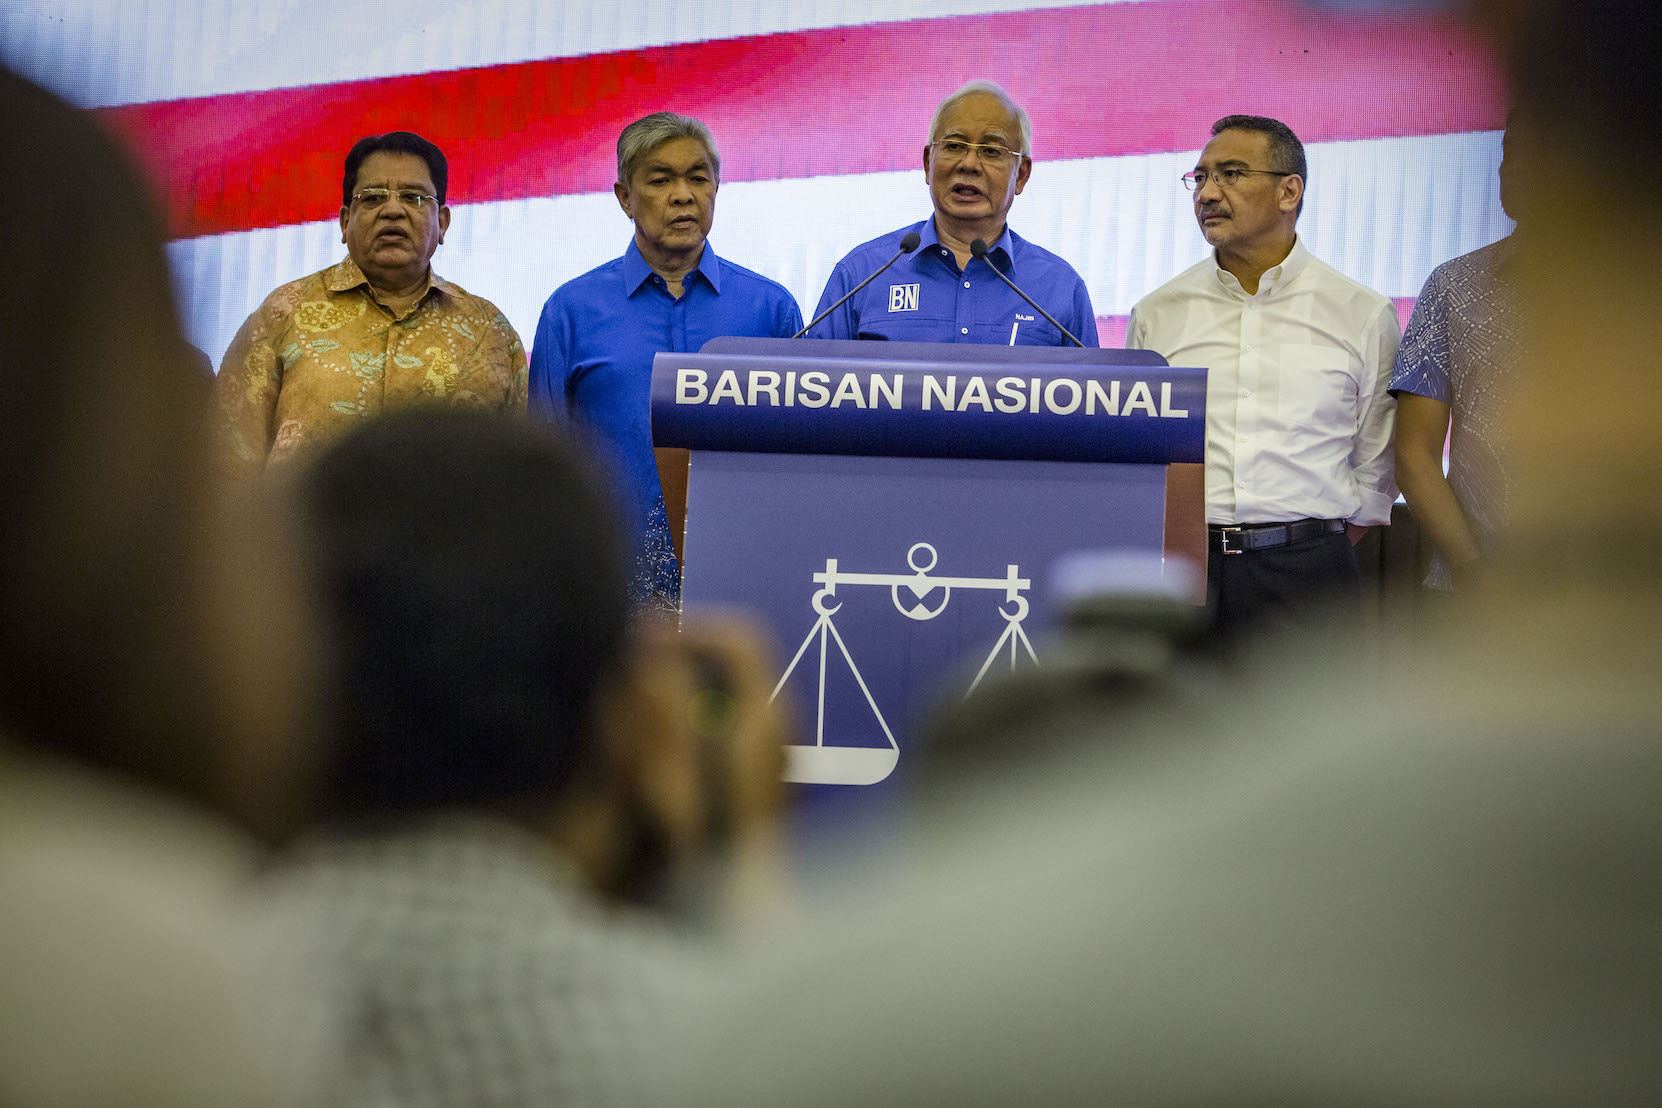 Making Sense of the Malaysian Elections